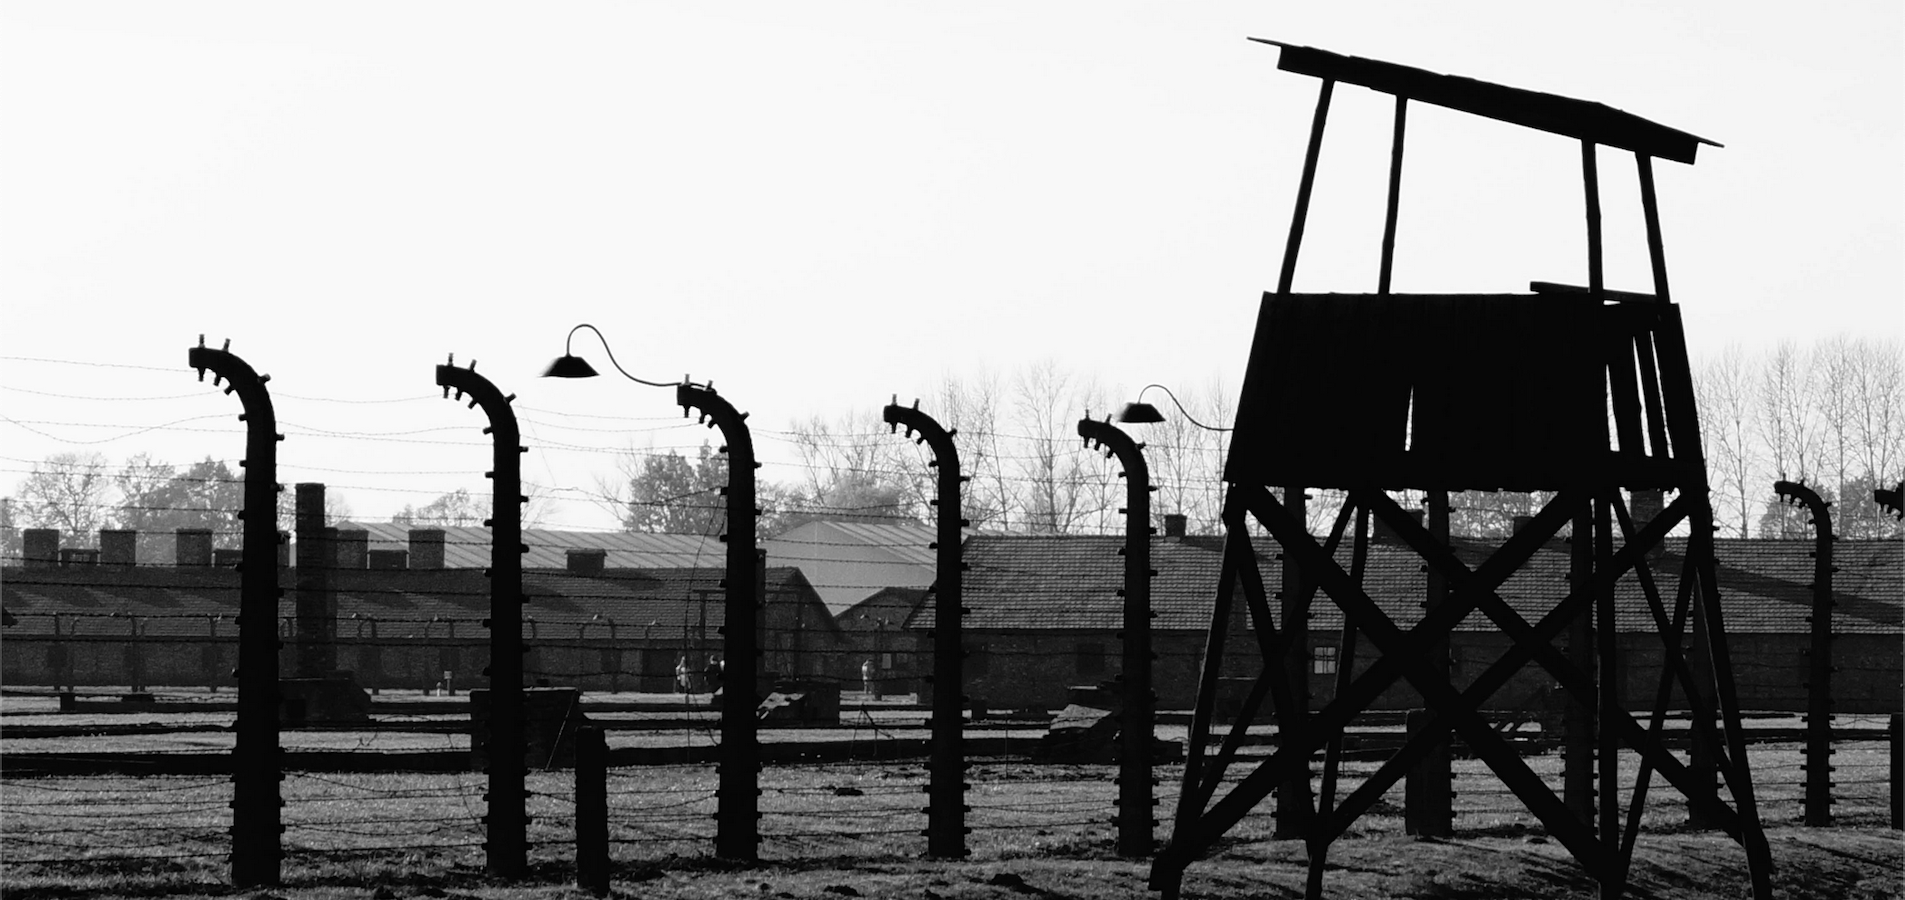 The Jewish Community Made A Mistake Focusing So Heavily On The Holocaust